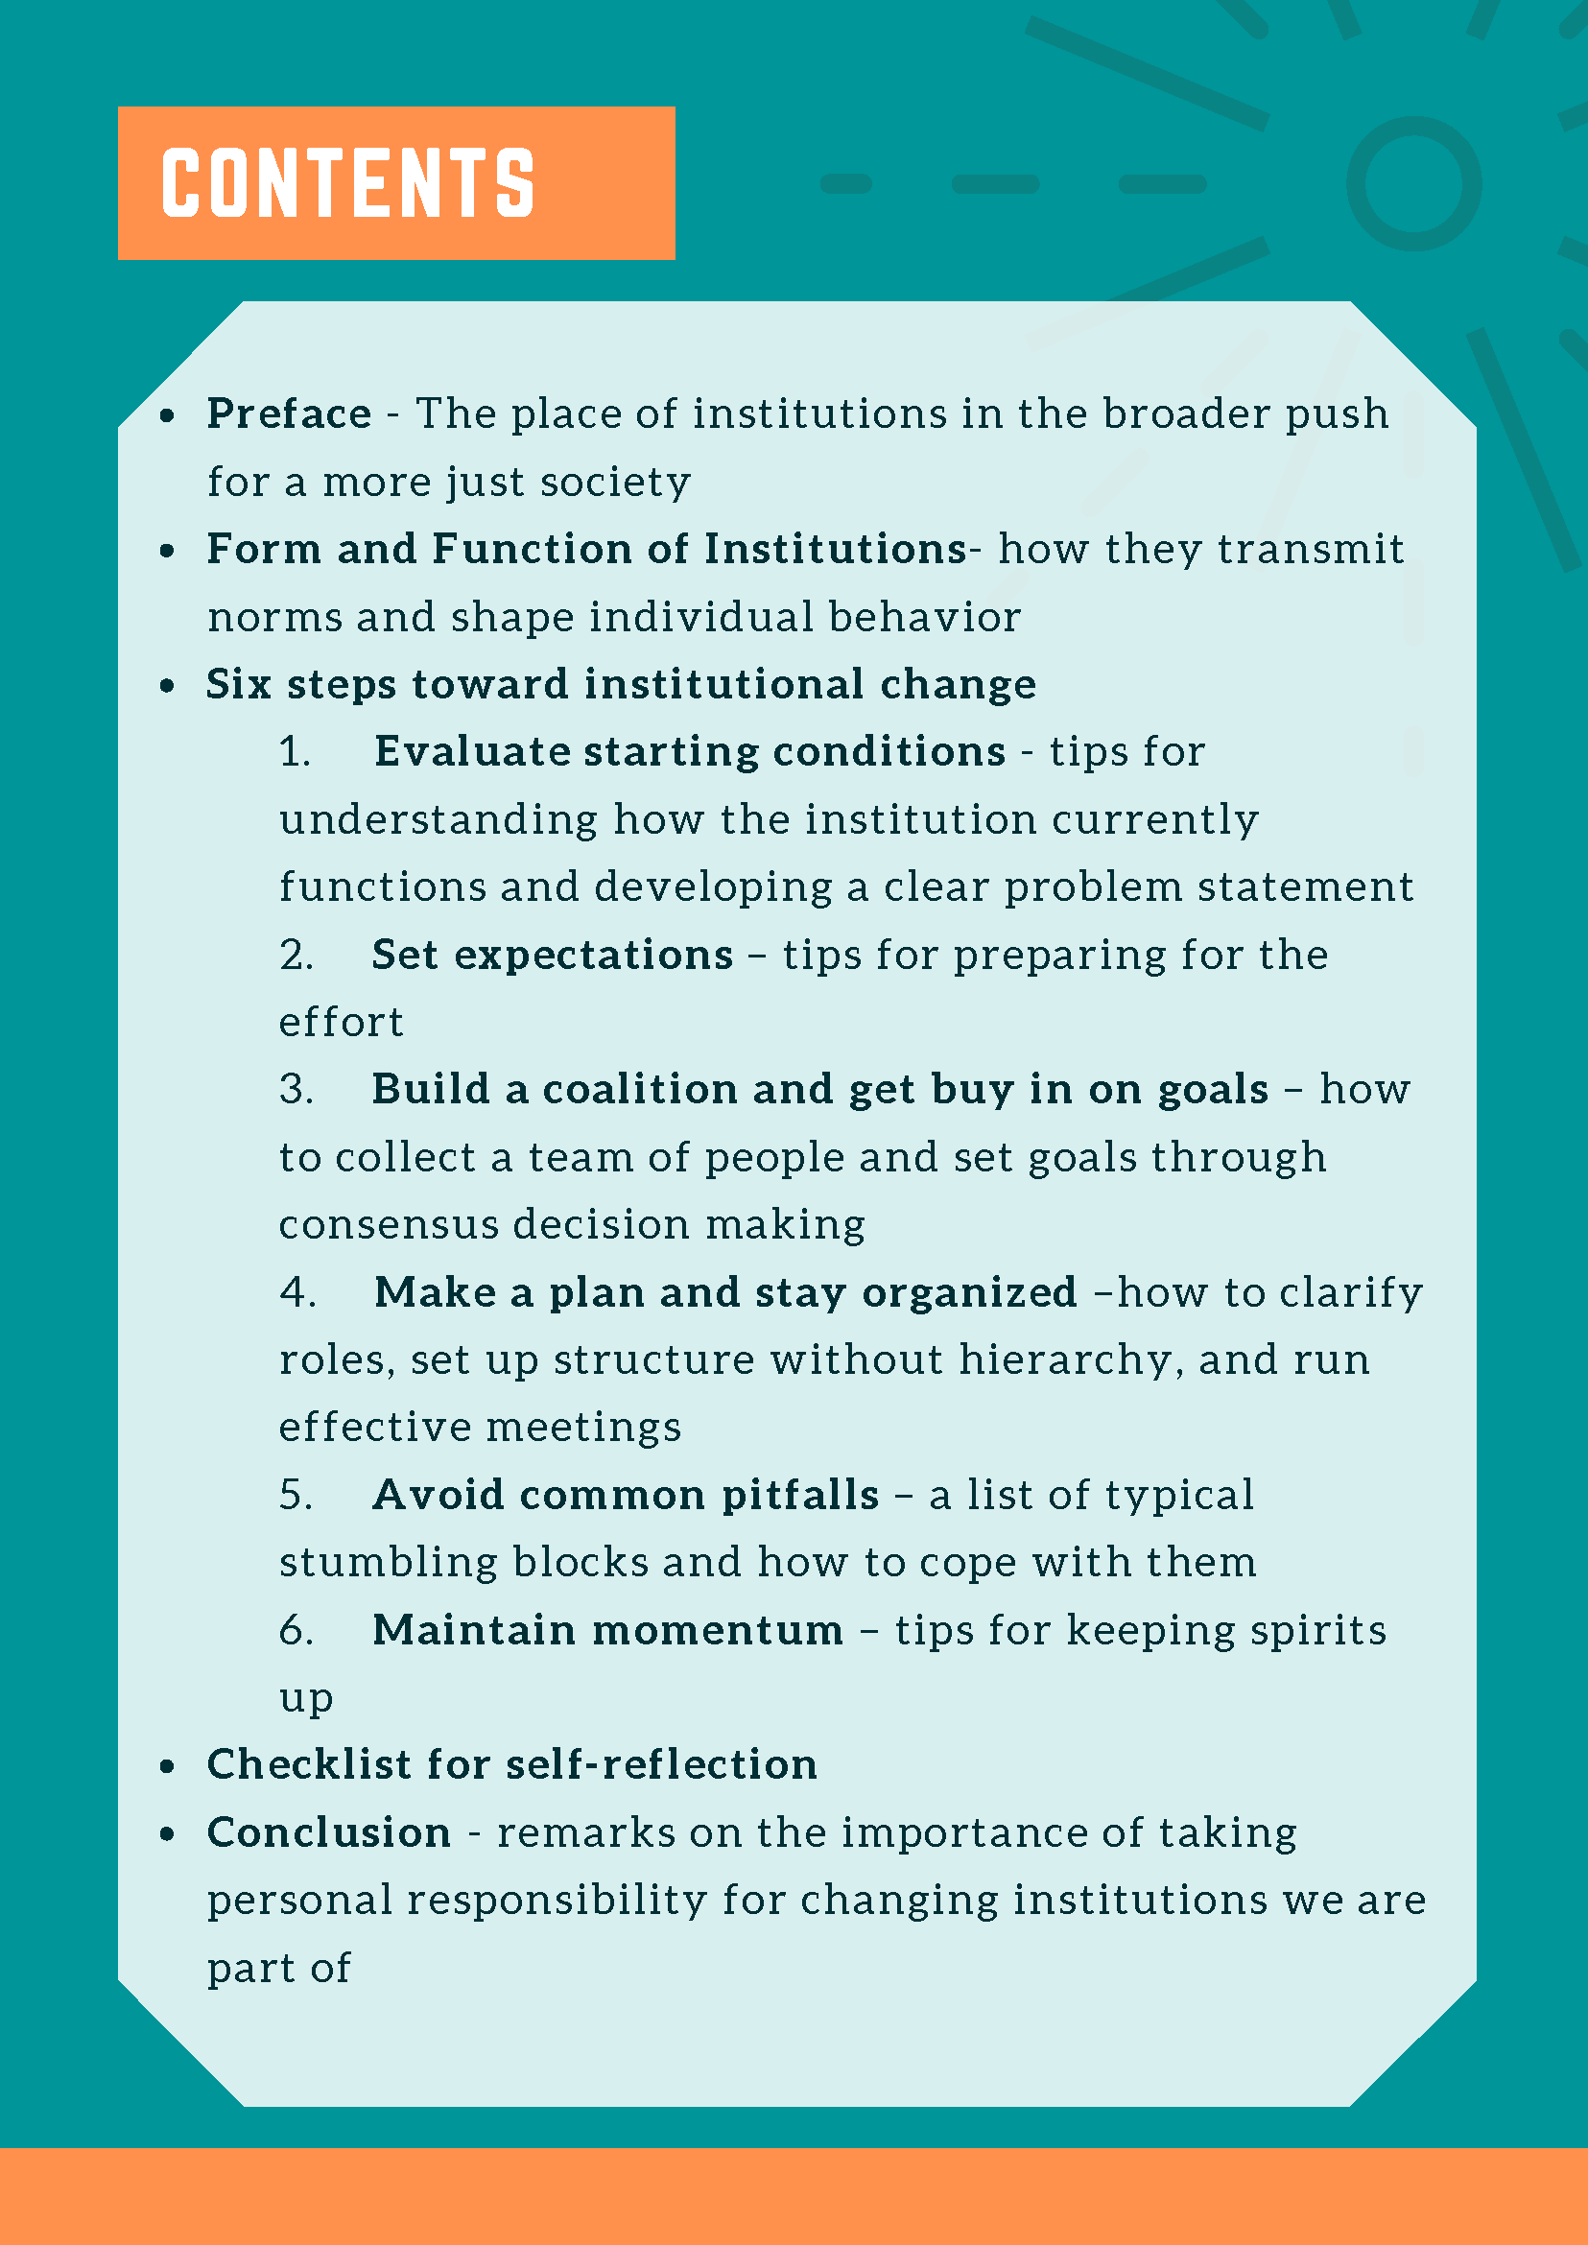 The publication's table of contents: Preface, Form and Functions of Institutions, Six Steps Towards Institutional Change, Checklist for Self-Reflection, and Conclusion